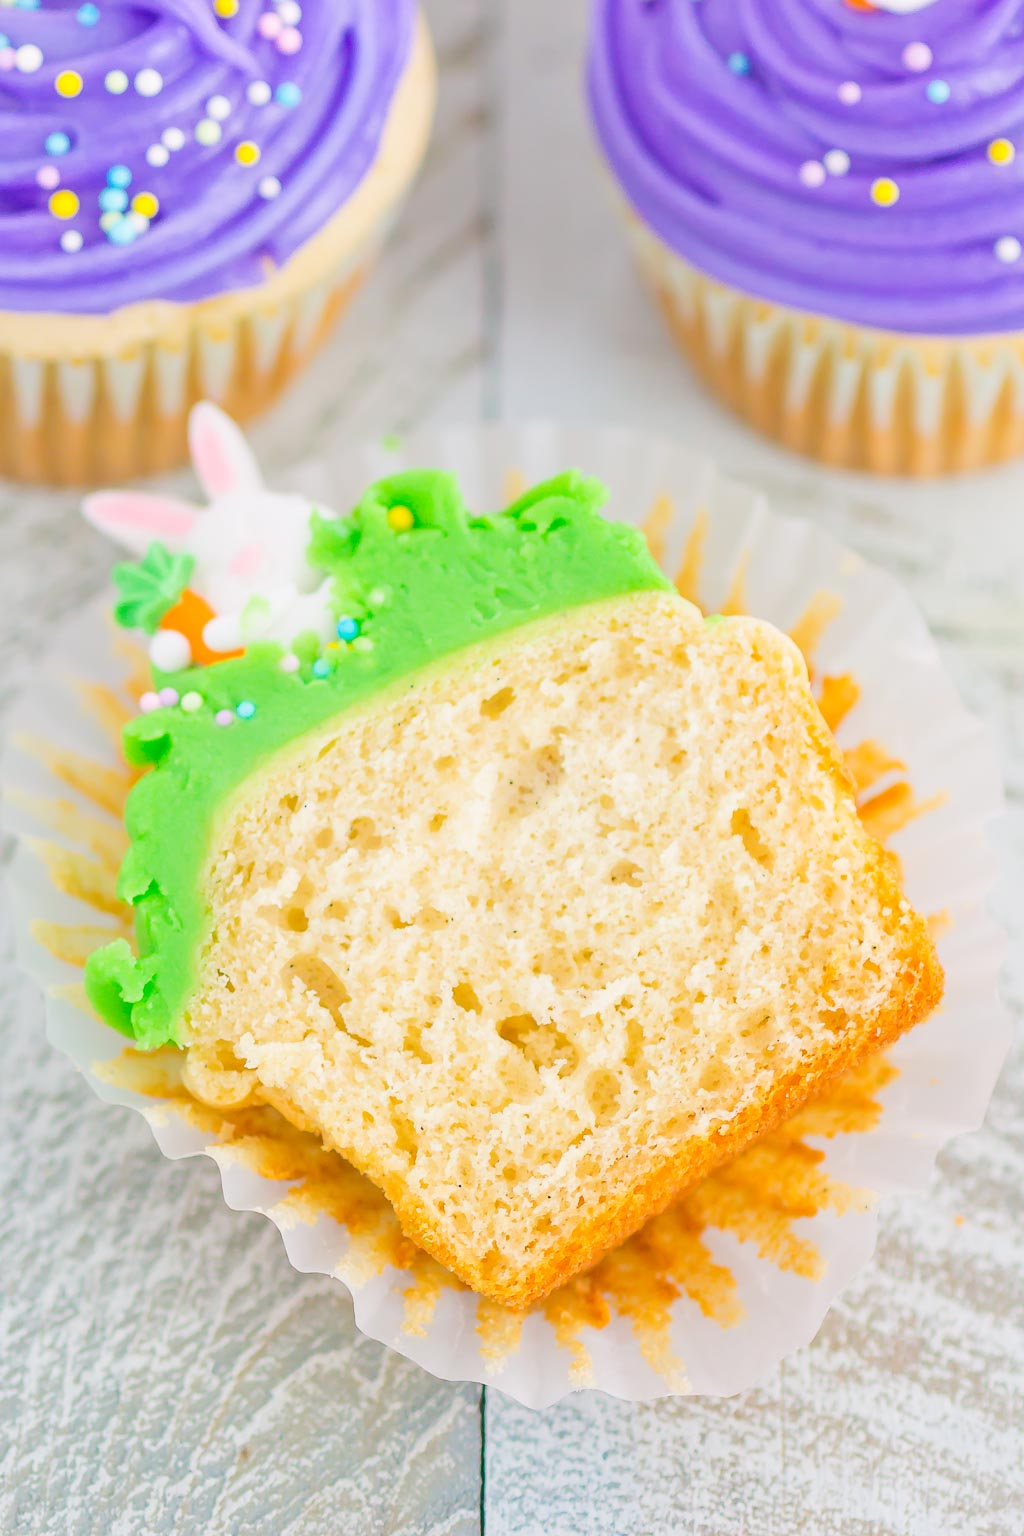 Easter Bunny Cupcakes are an easy and festive dessert to make for spring. A soft and moist yellow cupcake batter is baked until golden and then topped with a simple frosting, pastel sprinkles and a candy bunny. Fun, fast, and flavorful, these adorable cupcakes are perfect for Easter!